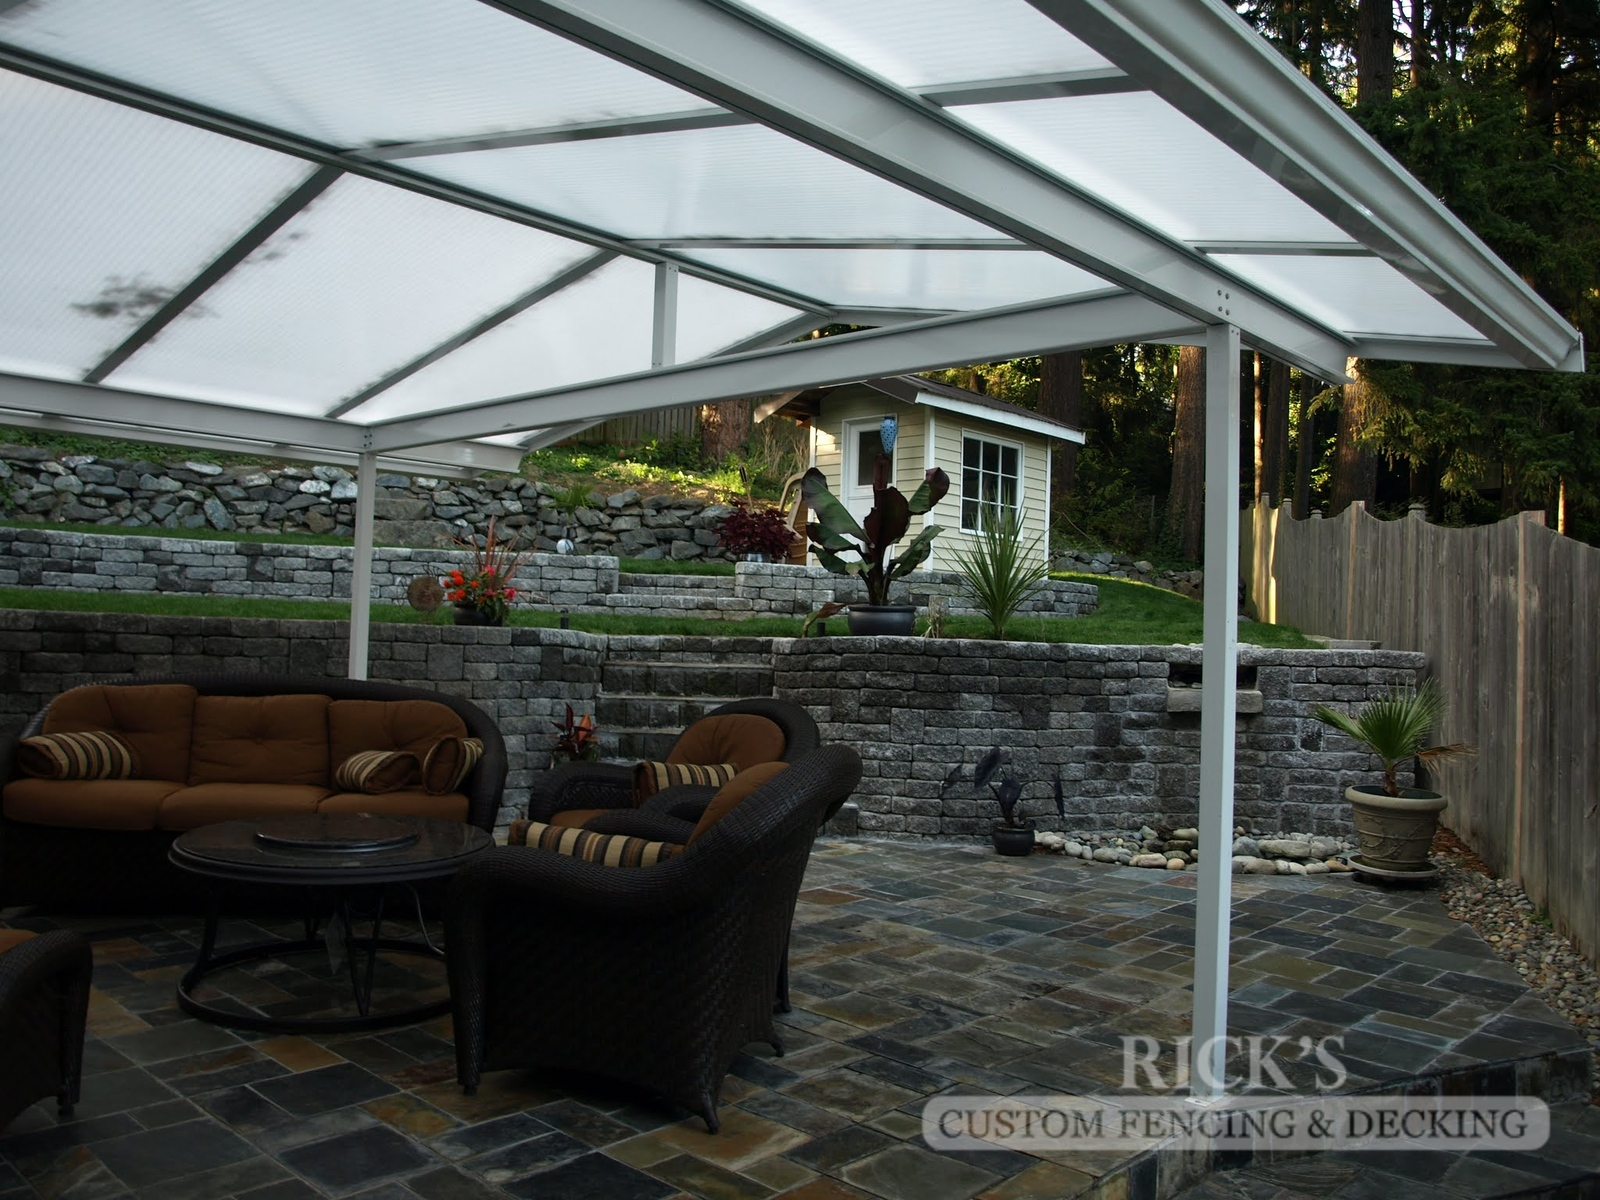 5049 - Acrylite Patio Cover